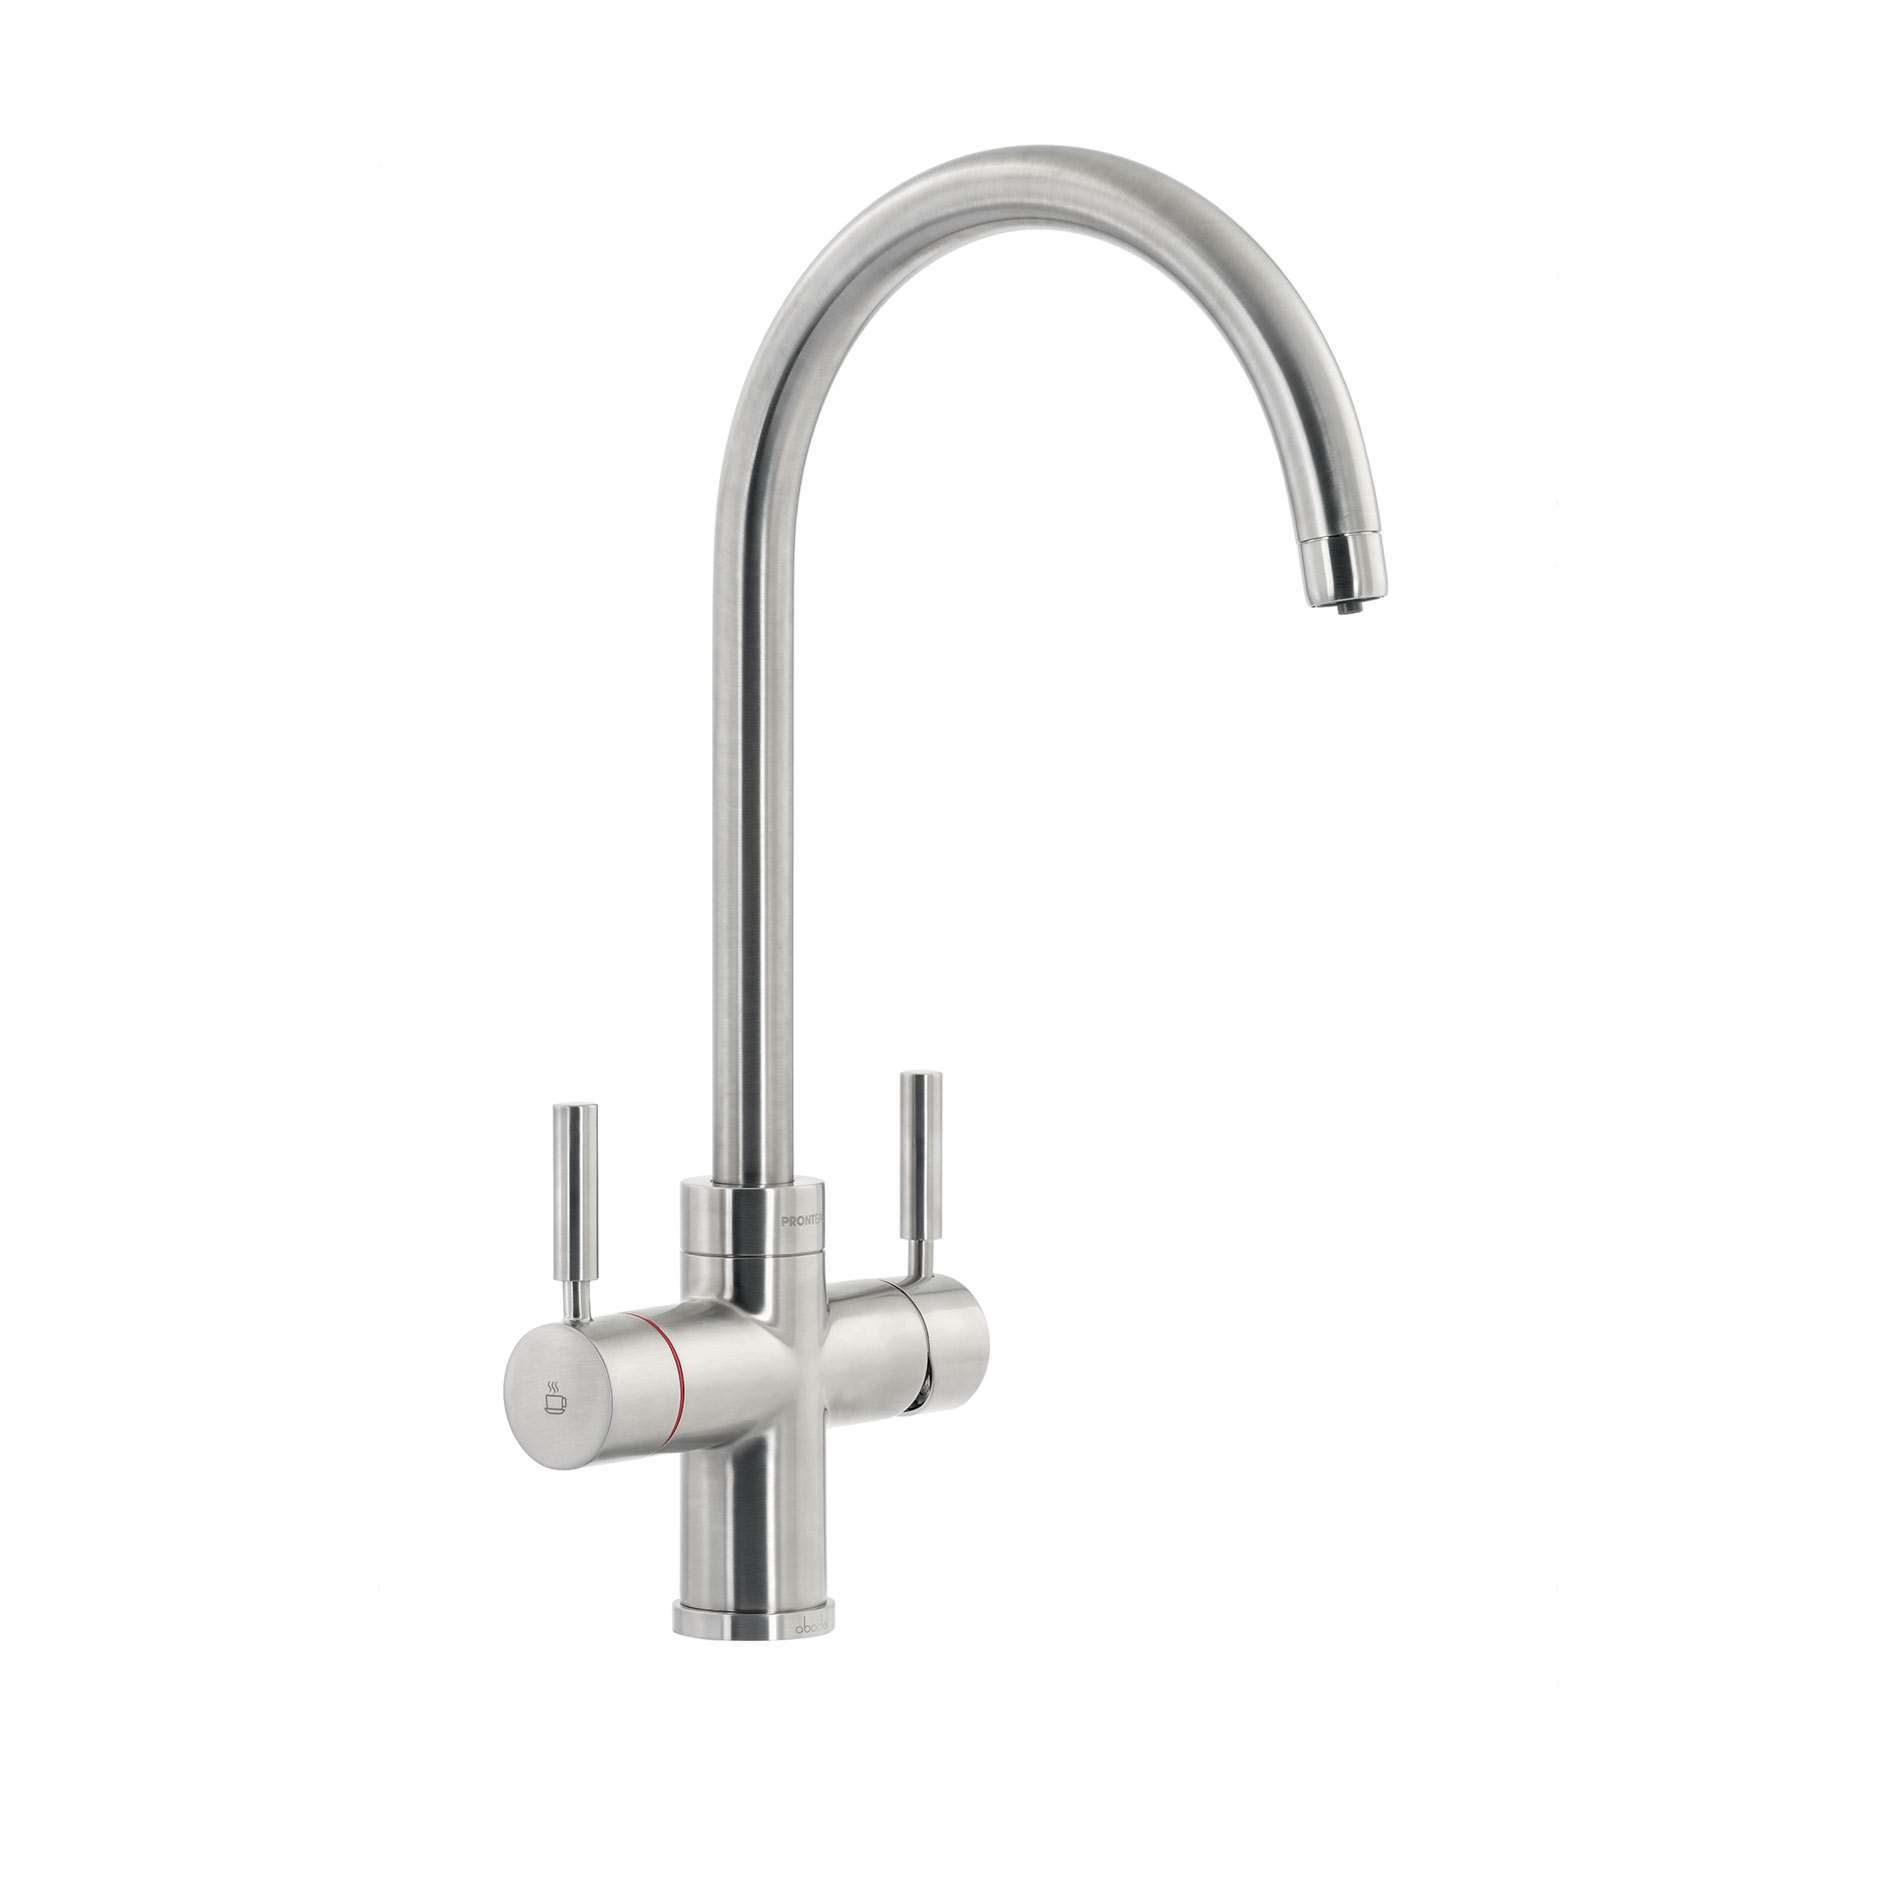 Picture of Pronteau Prostream PT1102 Brushed Nickel Tap